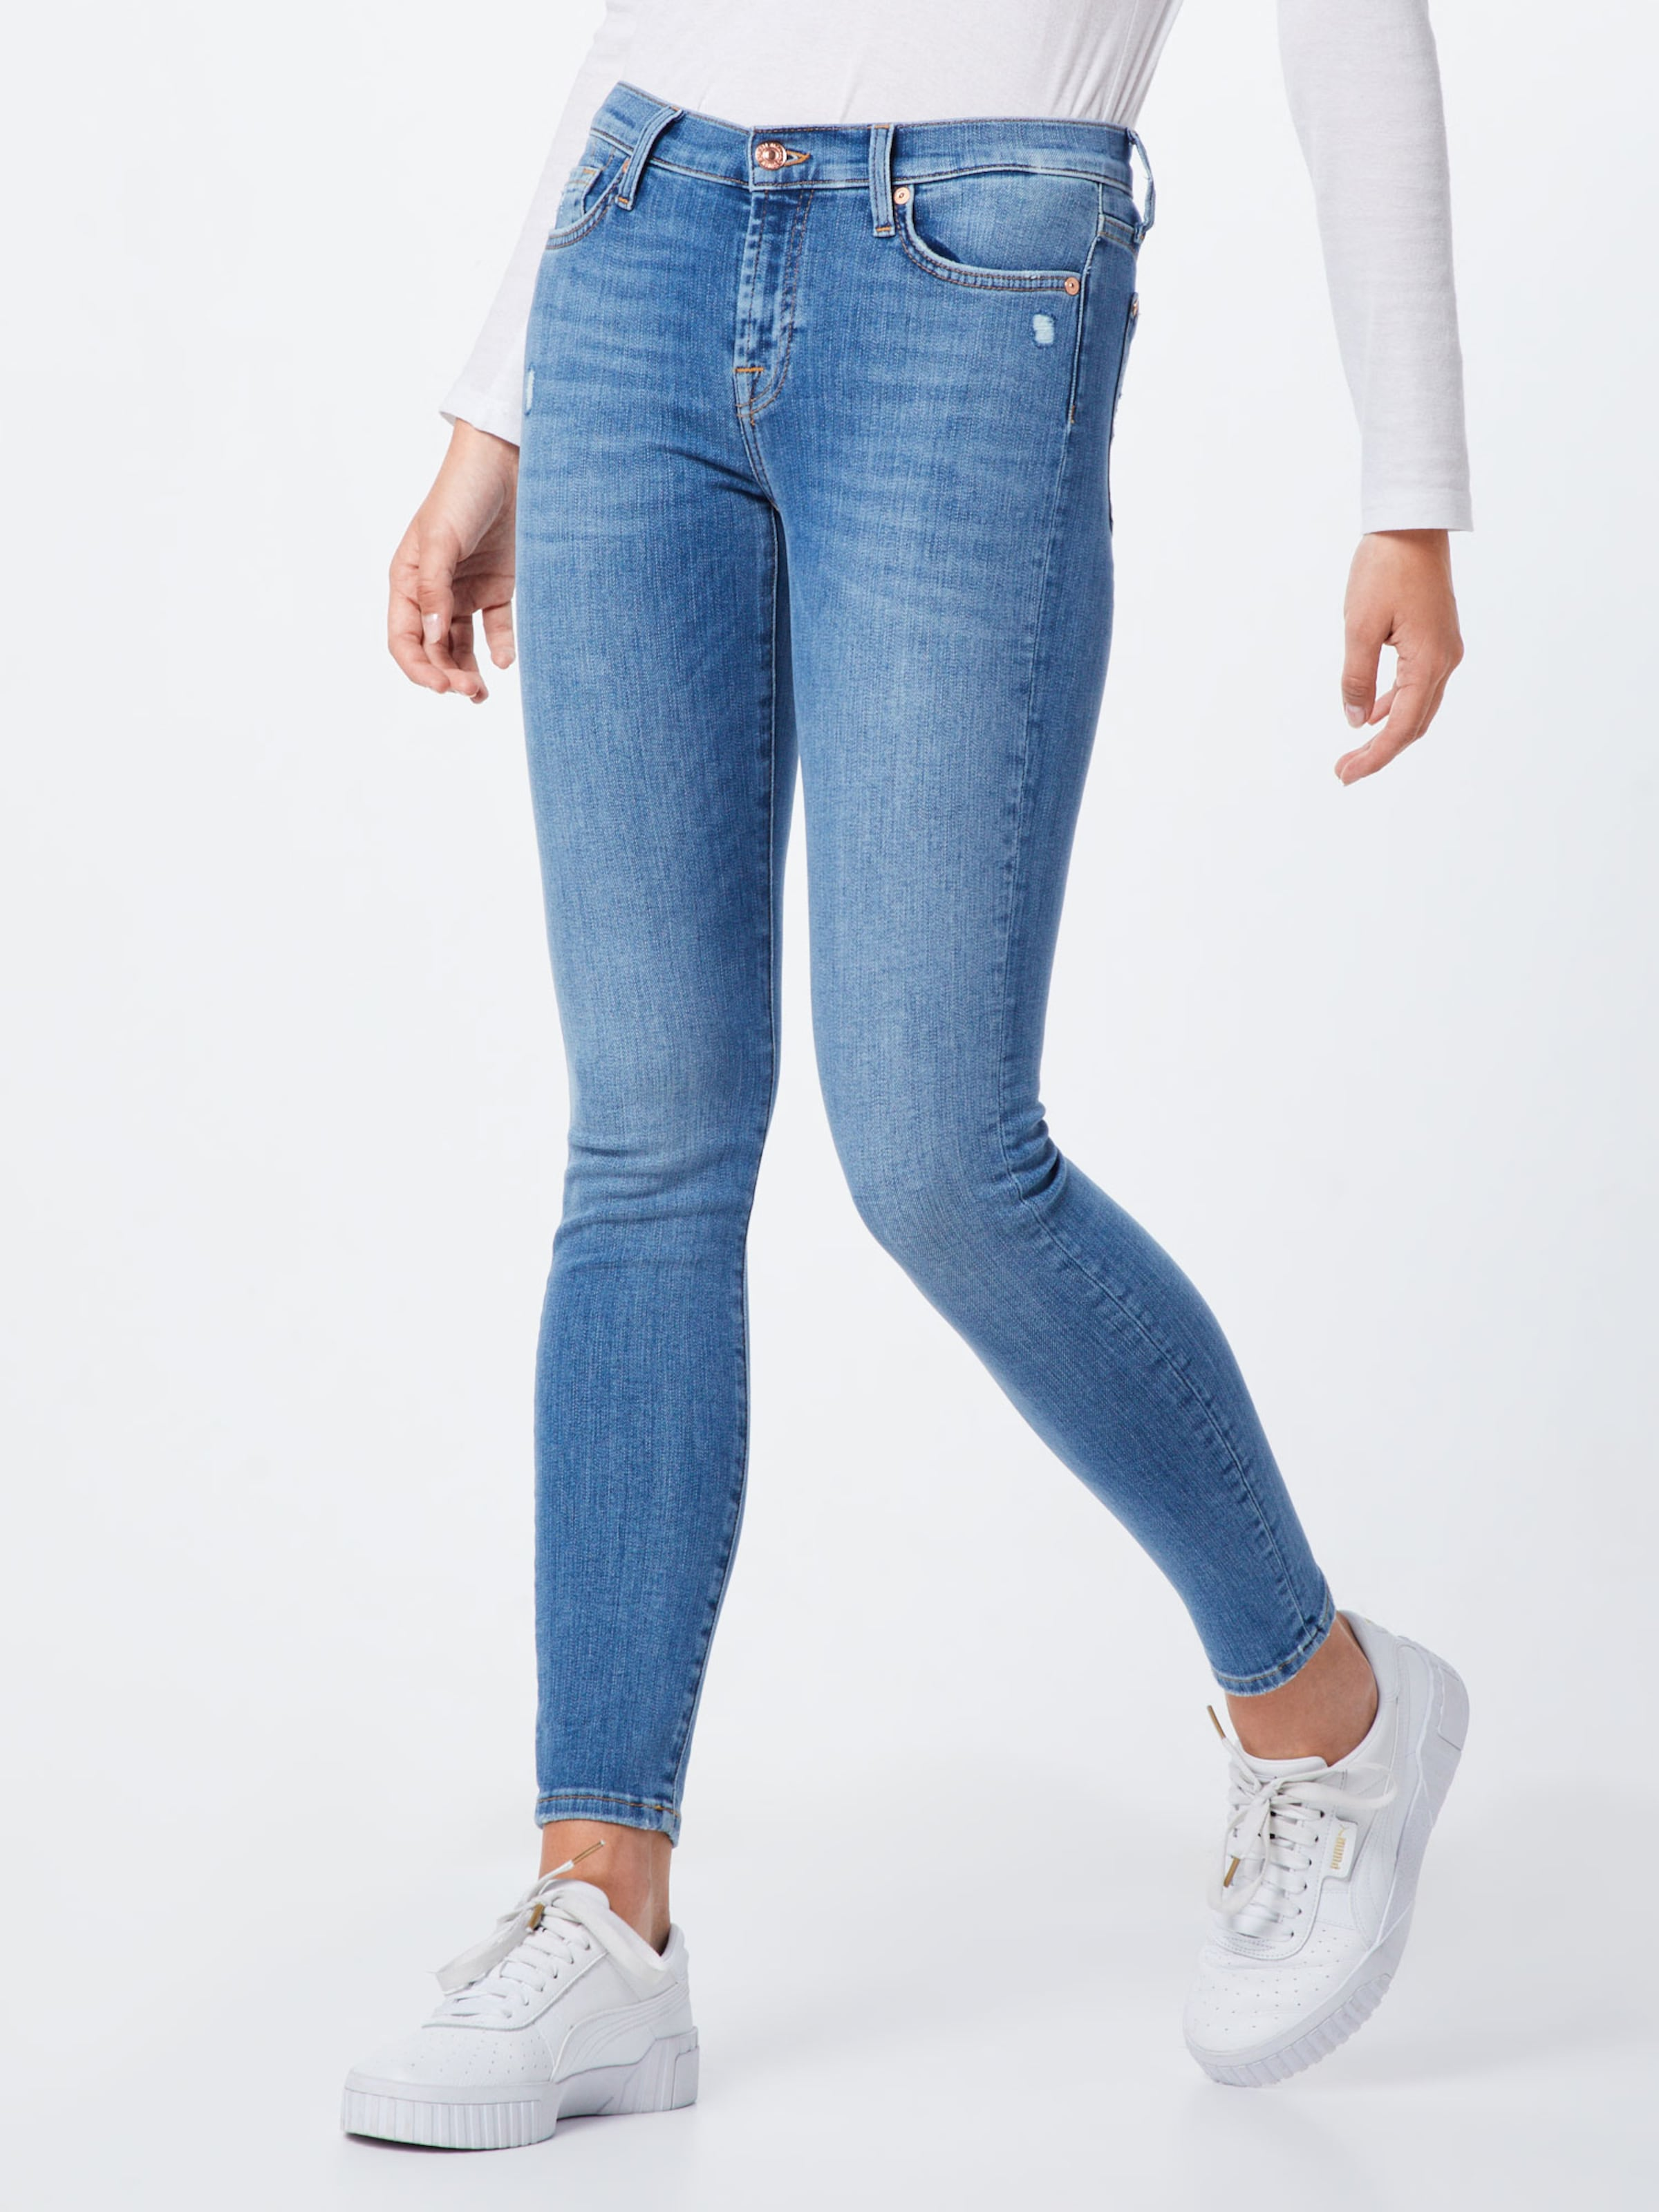 In 7 Jeans Denim Blue Mankind Skinny' For All 'the 08PXnwOk